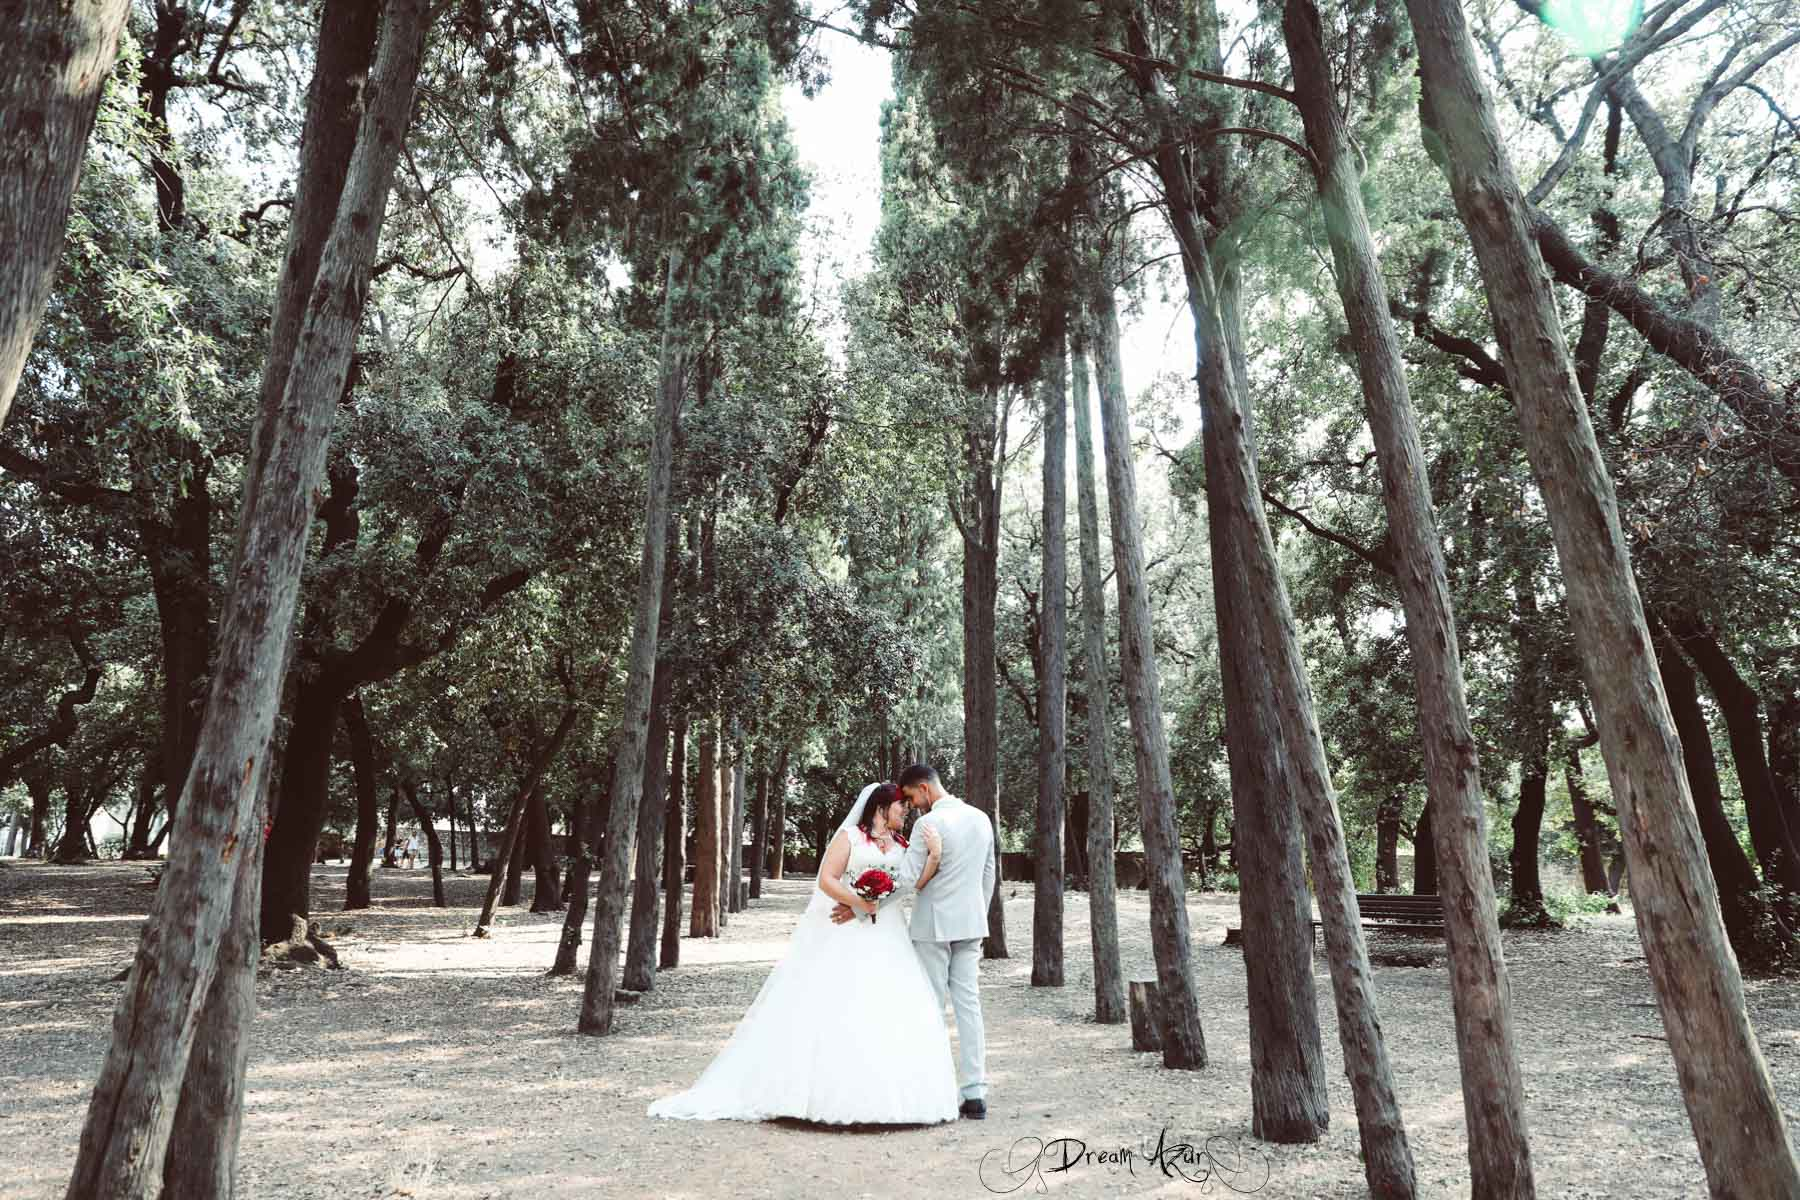 190824COMPO-Mariage-Cindy-et-Anthony-58